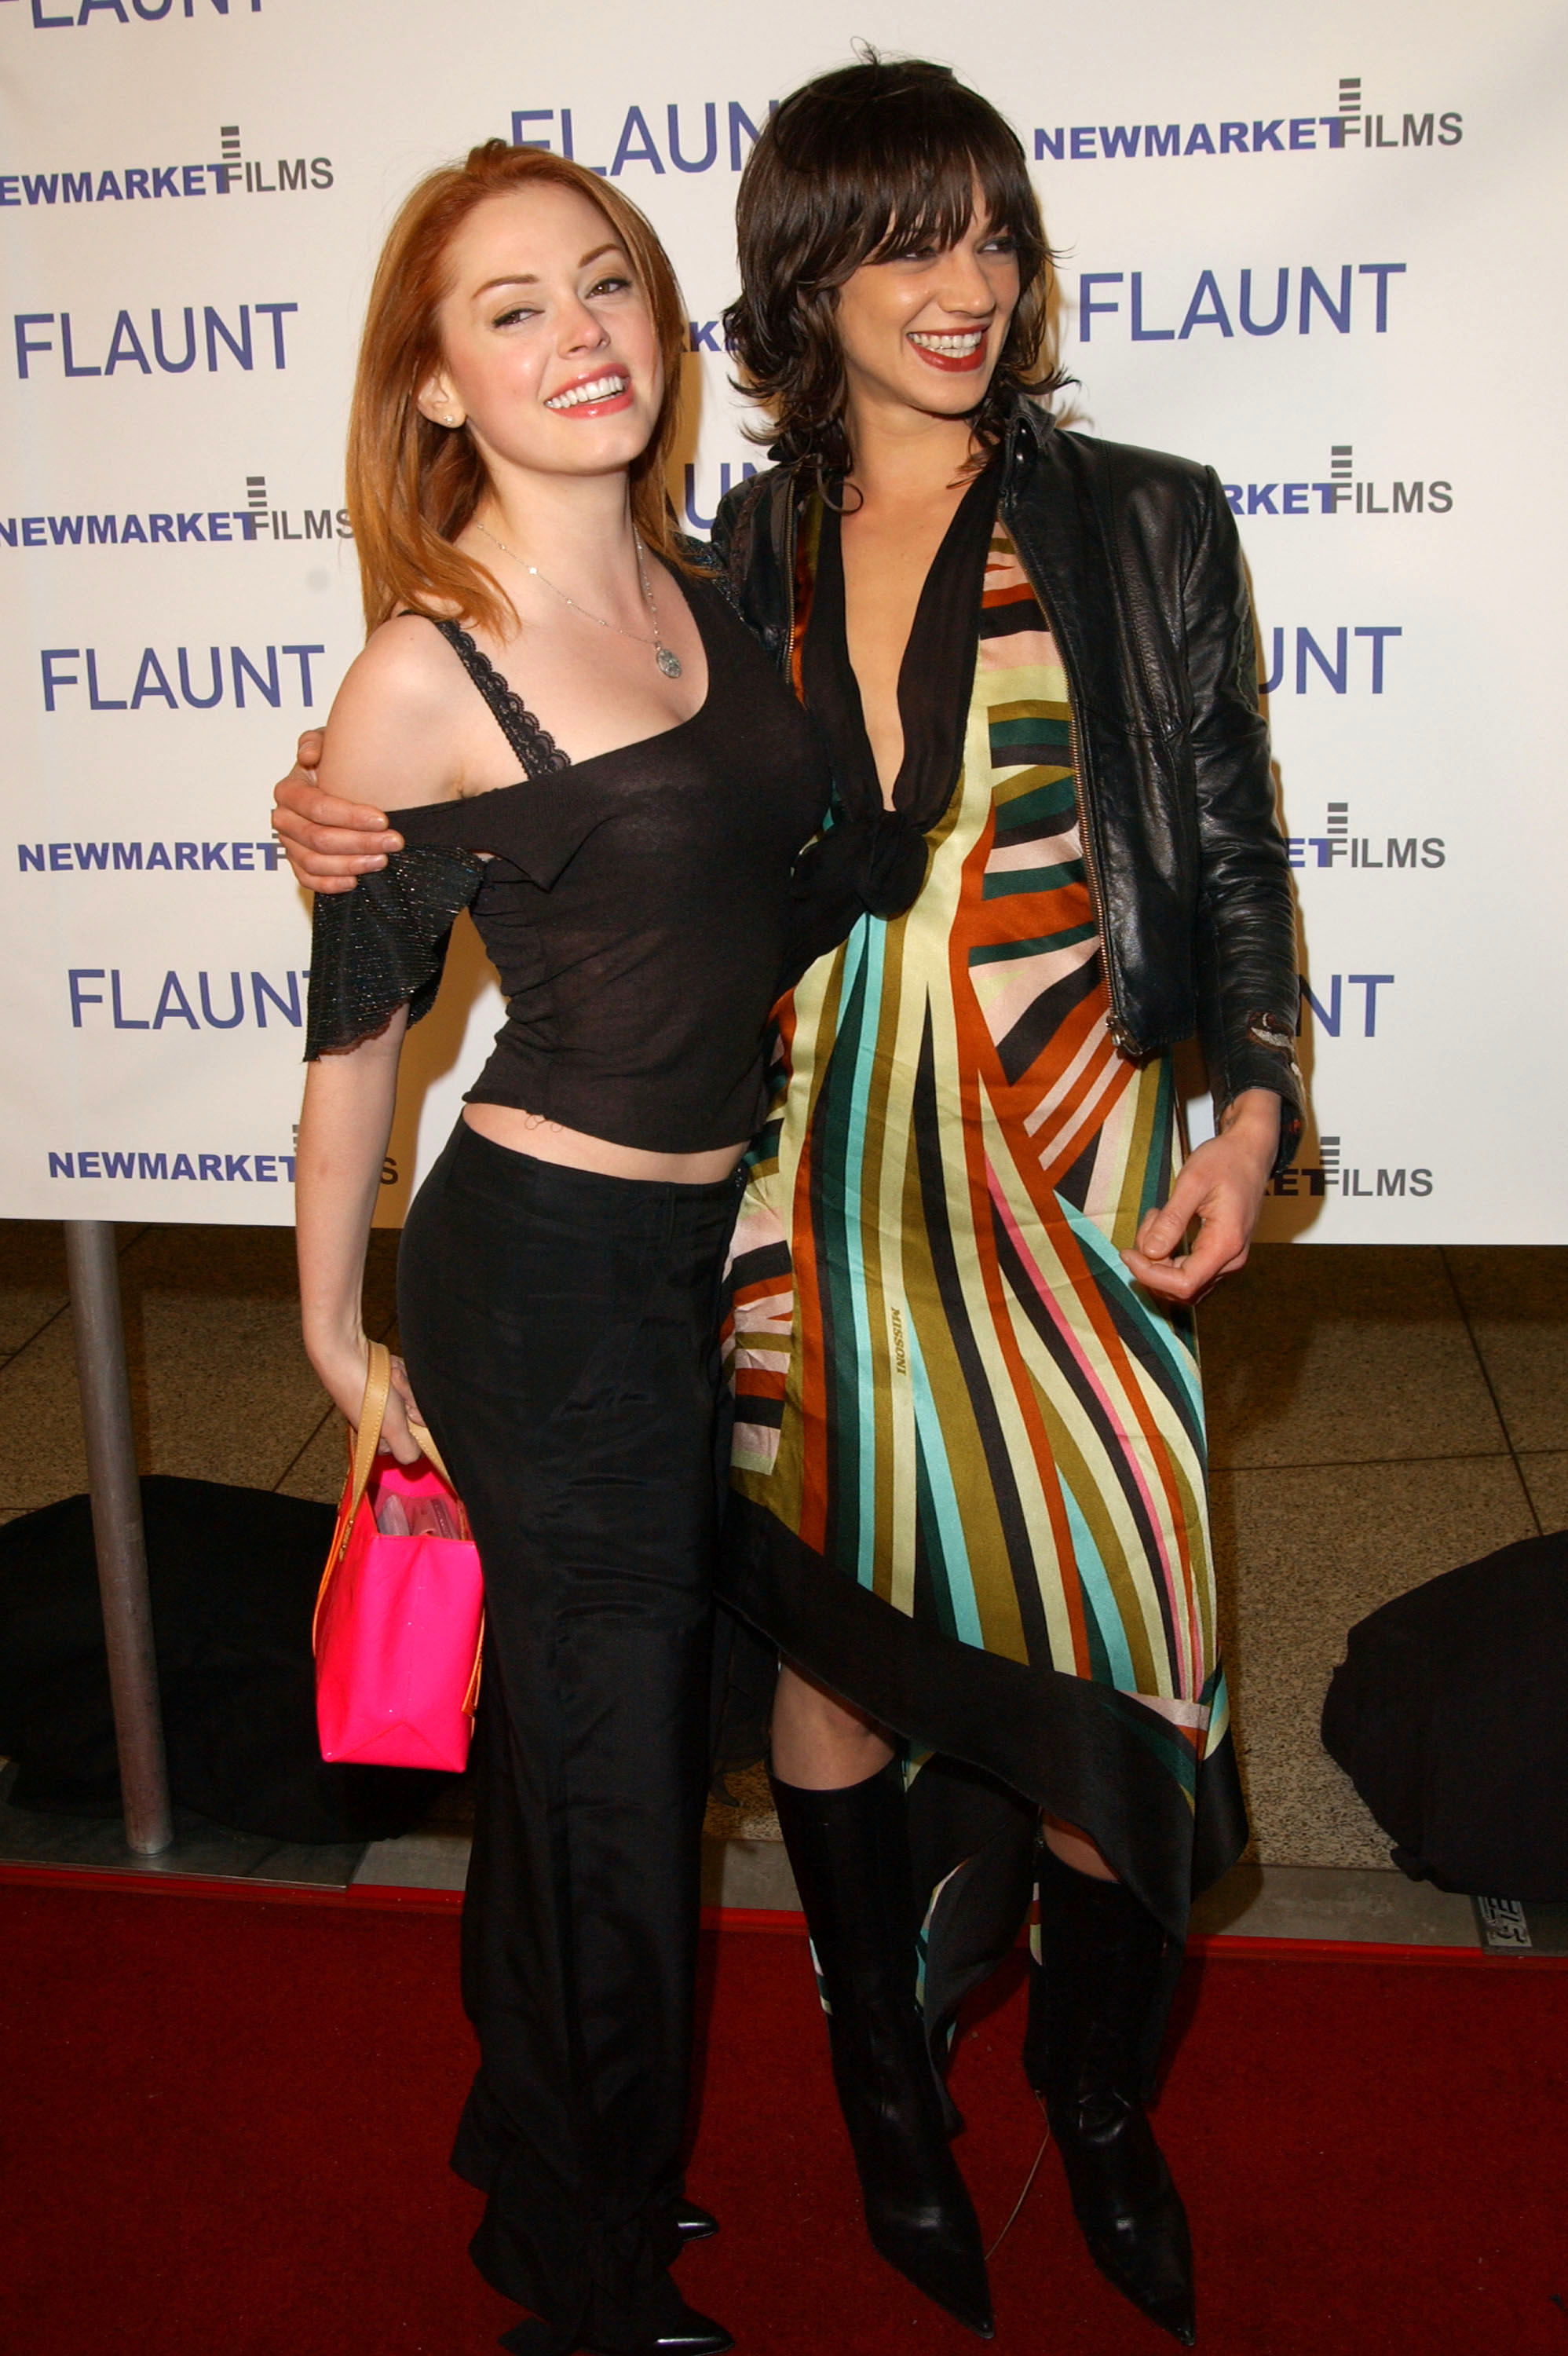 (L to R) Actresses Rose McGowan and Asia Argento attend the premiere of 'Spun' at Pacific's Cinerama Dome Theater on March 17, 2003 in Hollywood, California.